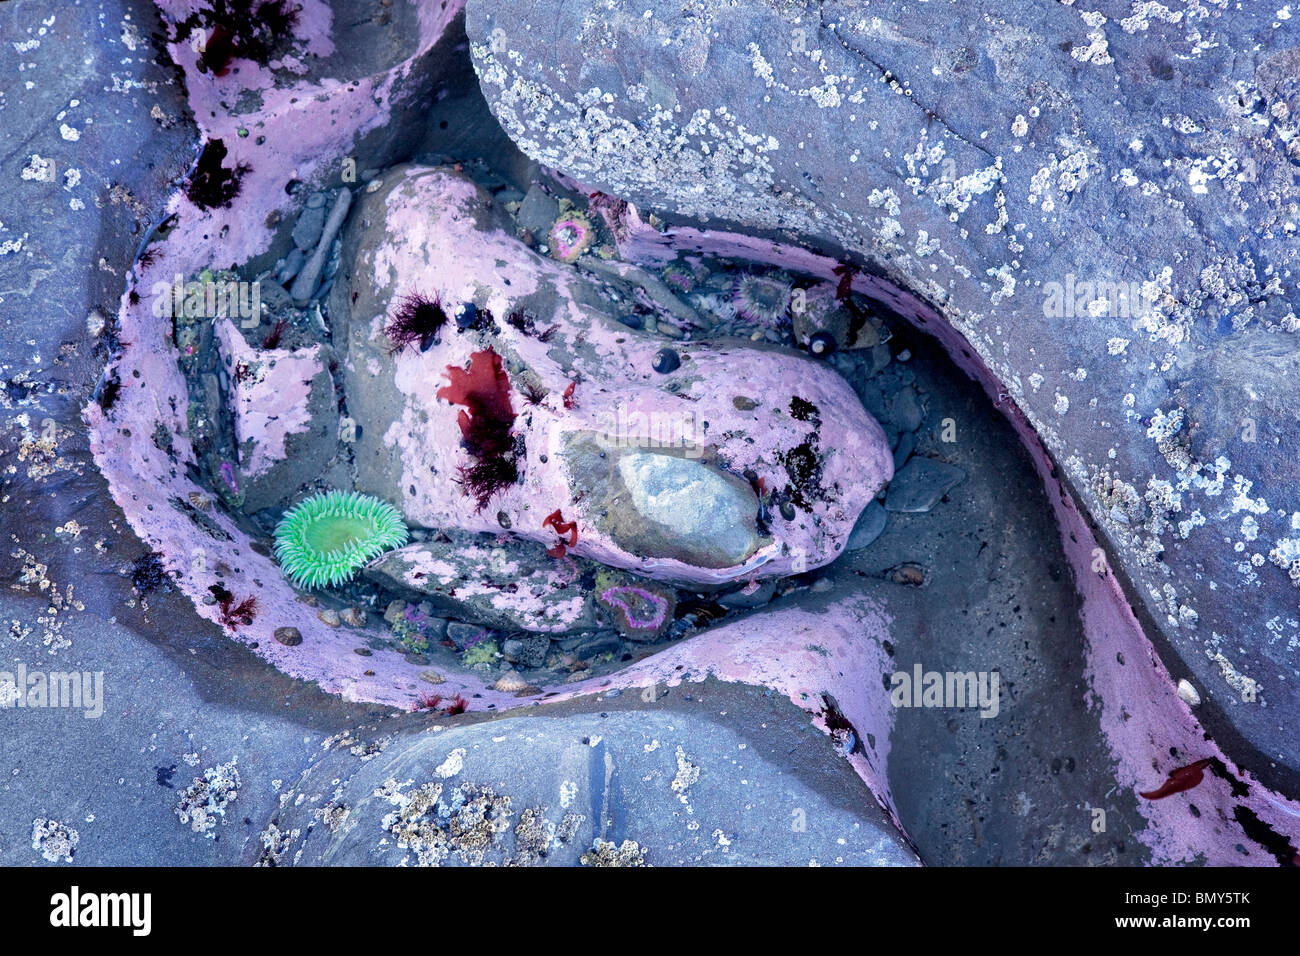 Sea Anemone In Tide Pool At Rialto Beach Olympic National Park Stock Photo Royalty Free Image